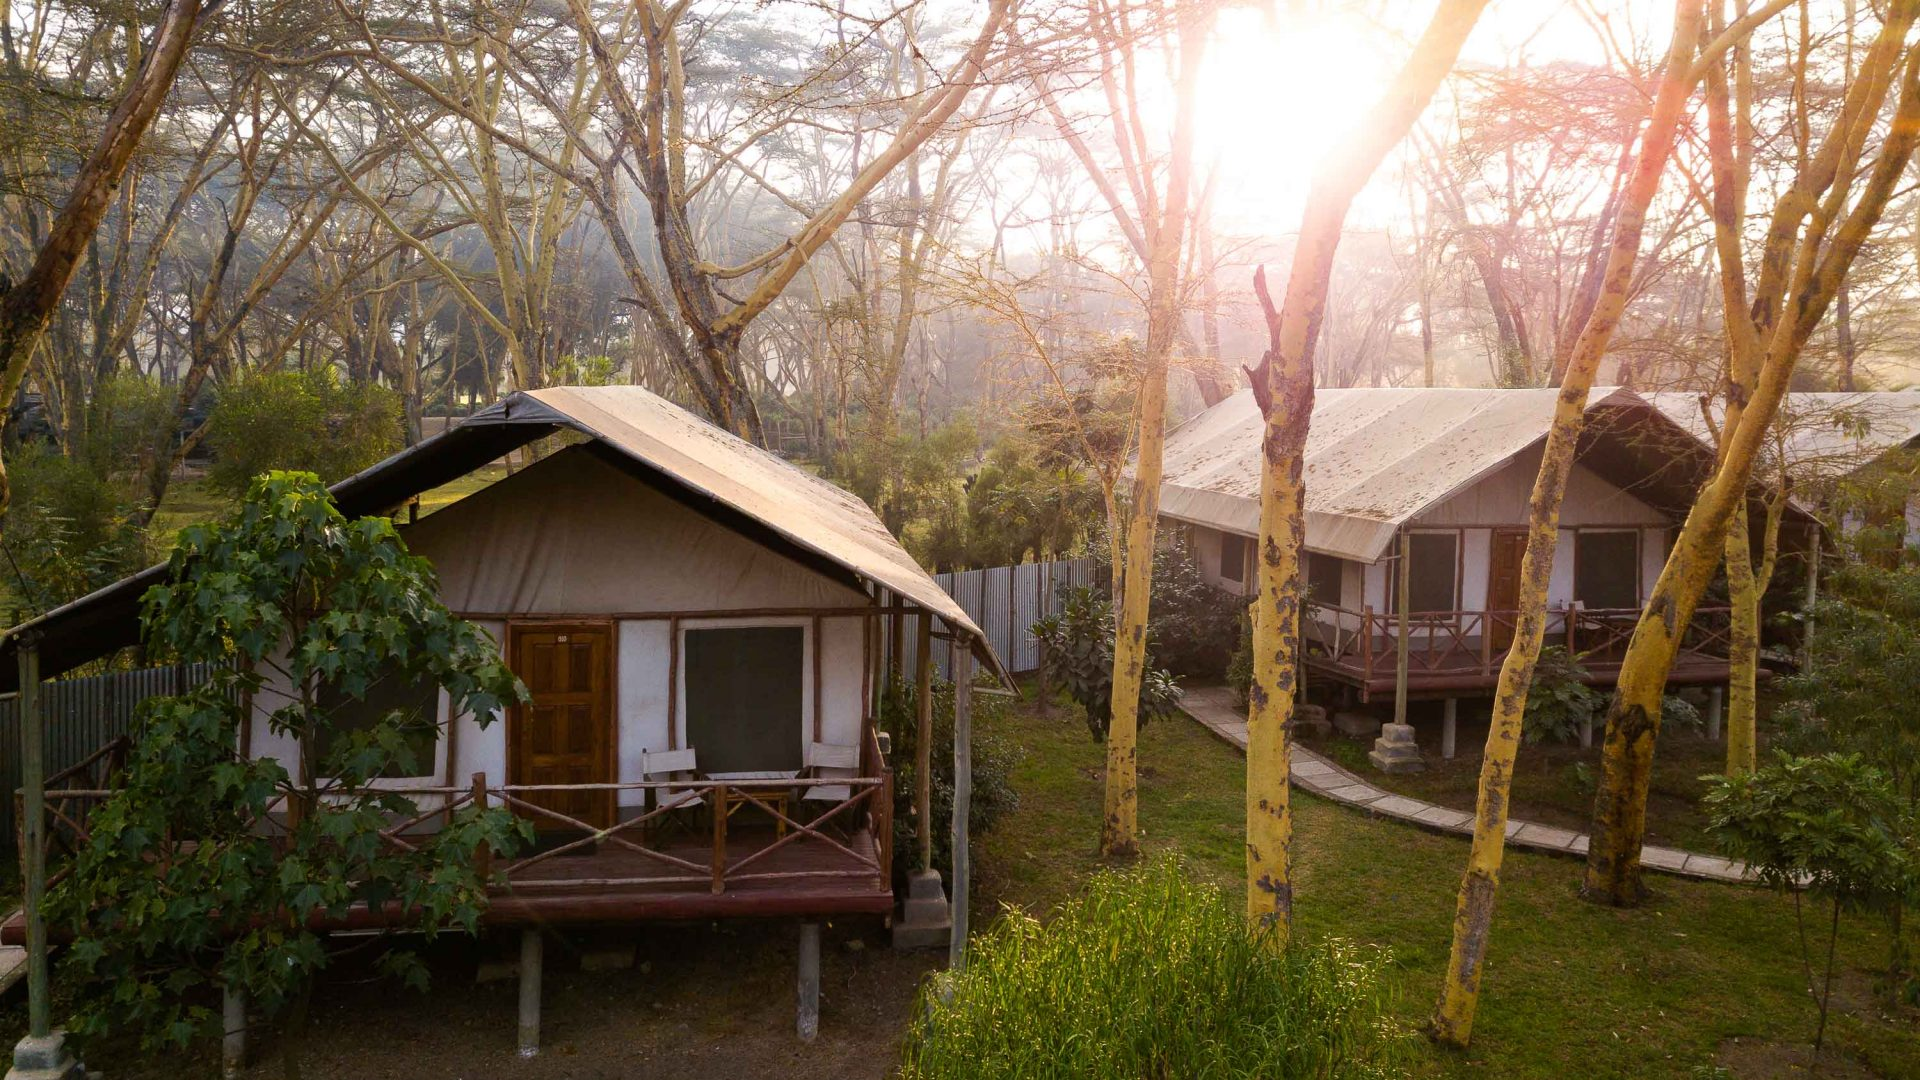 Accommodation during Intrepid Travel's women's-only expedition to Kenya.